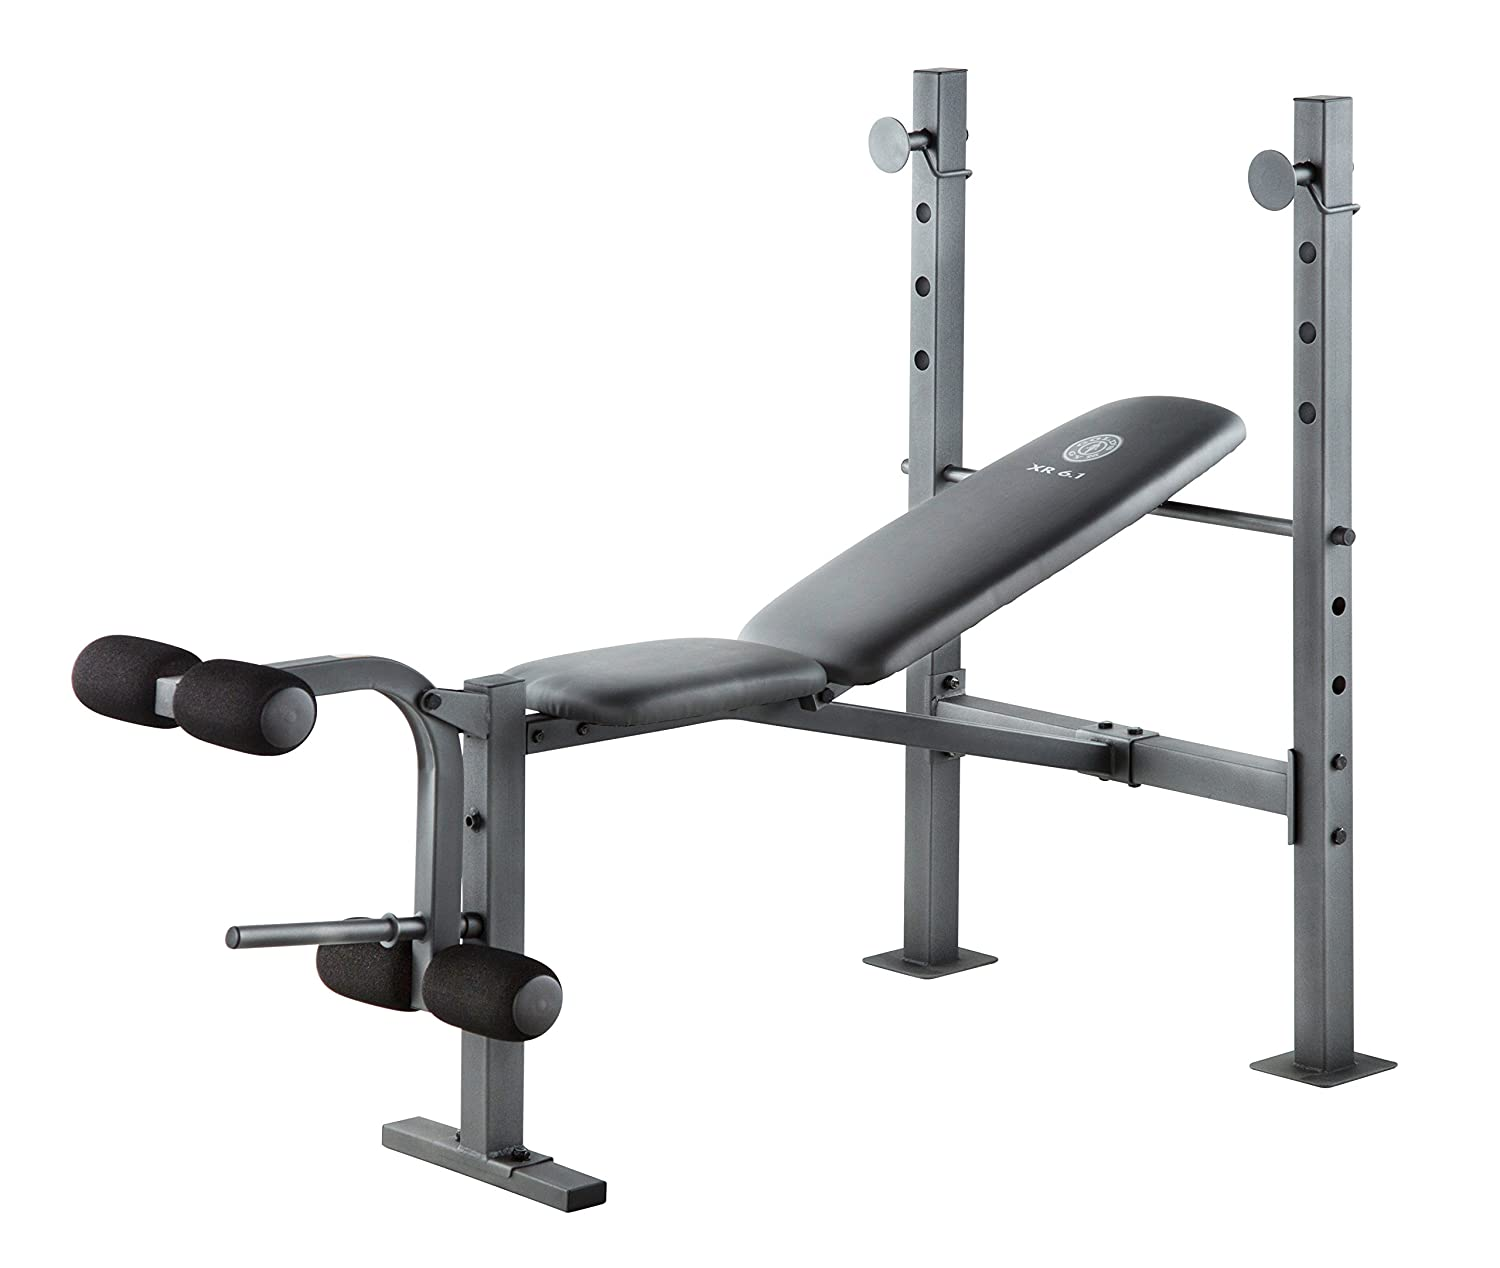 fitness supplies wells bench ga corner famed life golds olympic weight racks in artistic bodymax pro as benches flat gym zenith weider fable